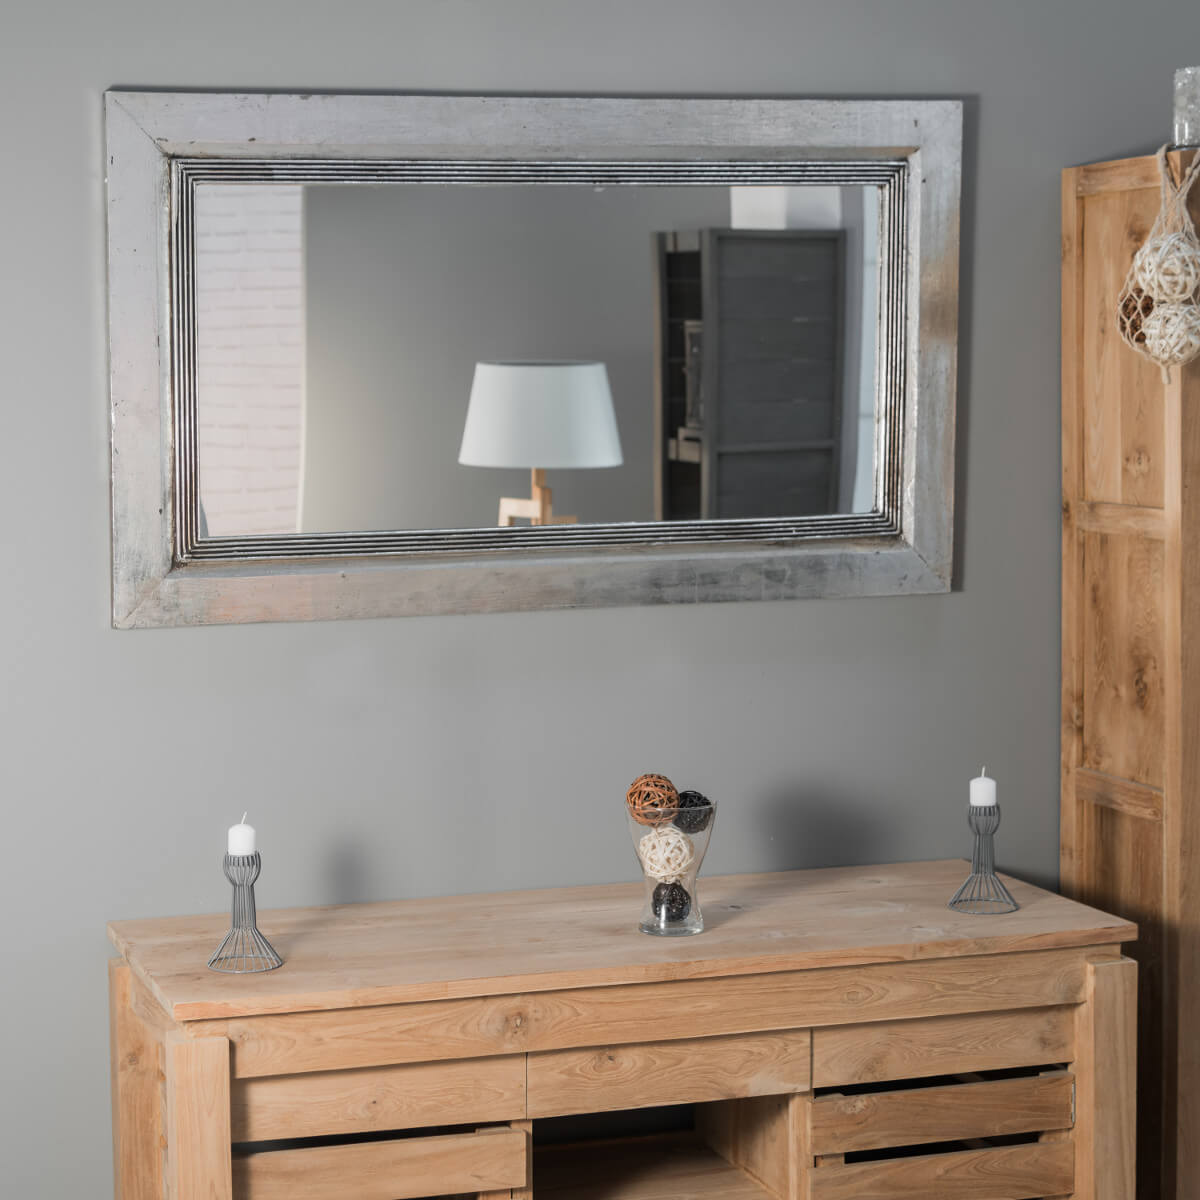 Miroir venise en bois patin argent 140cm x 80cm for Grand miroir salon